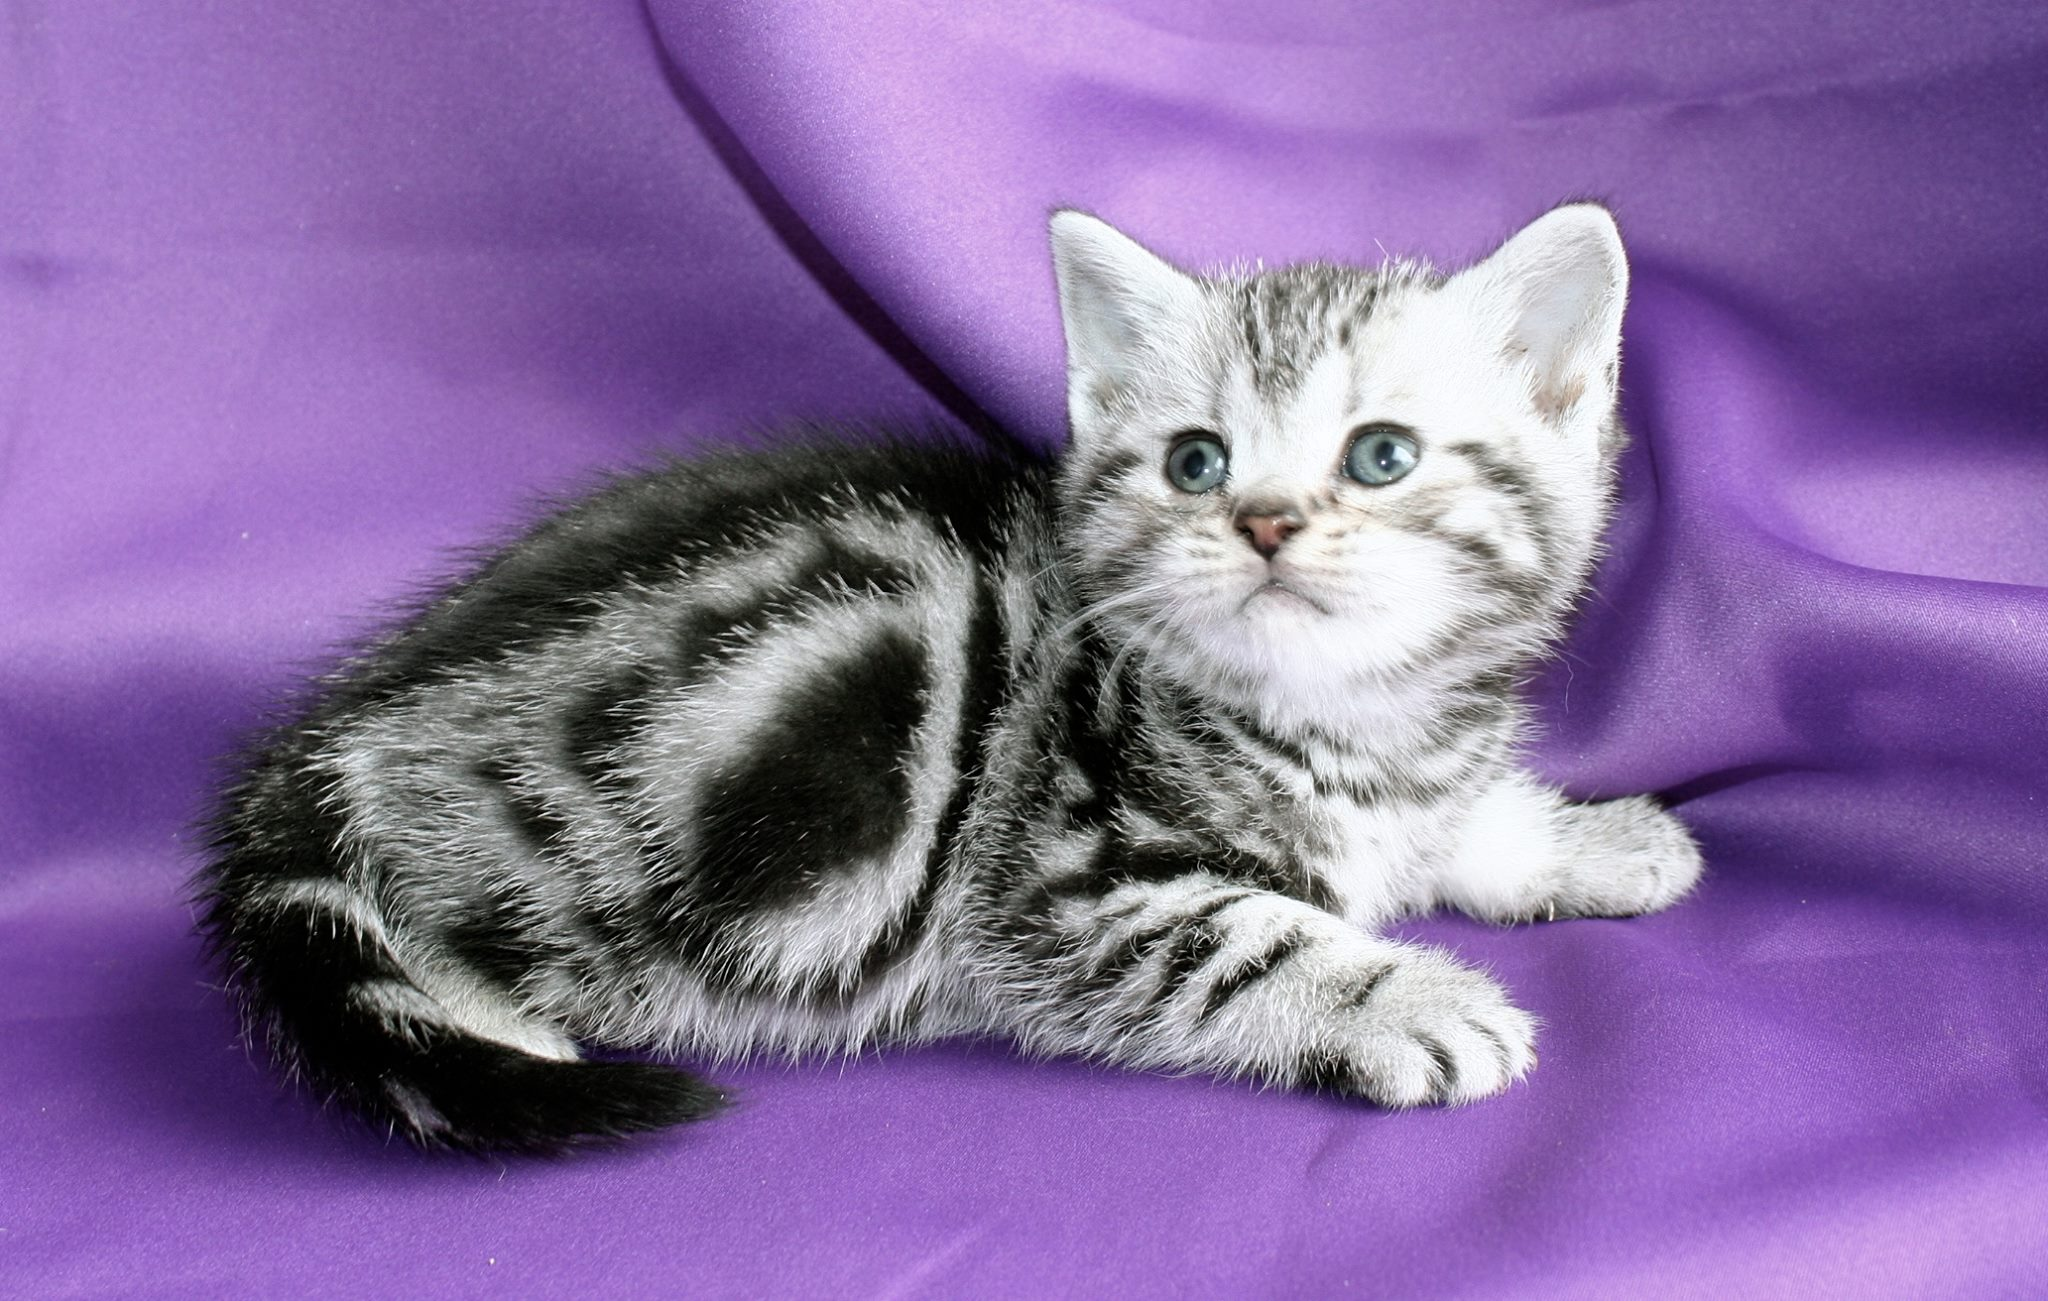 Image of American Shorthair silver tabby kitten on purple backdrop